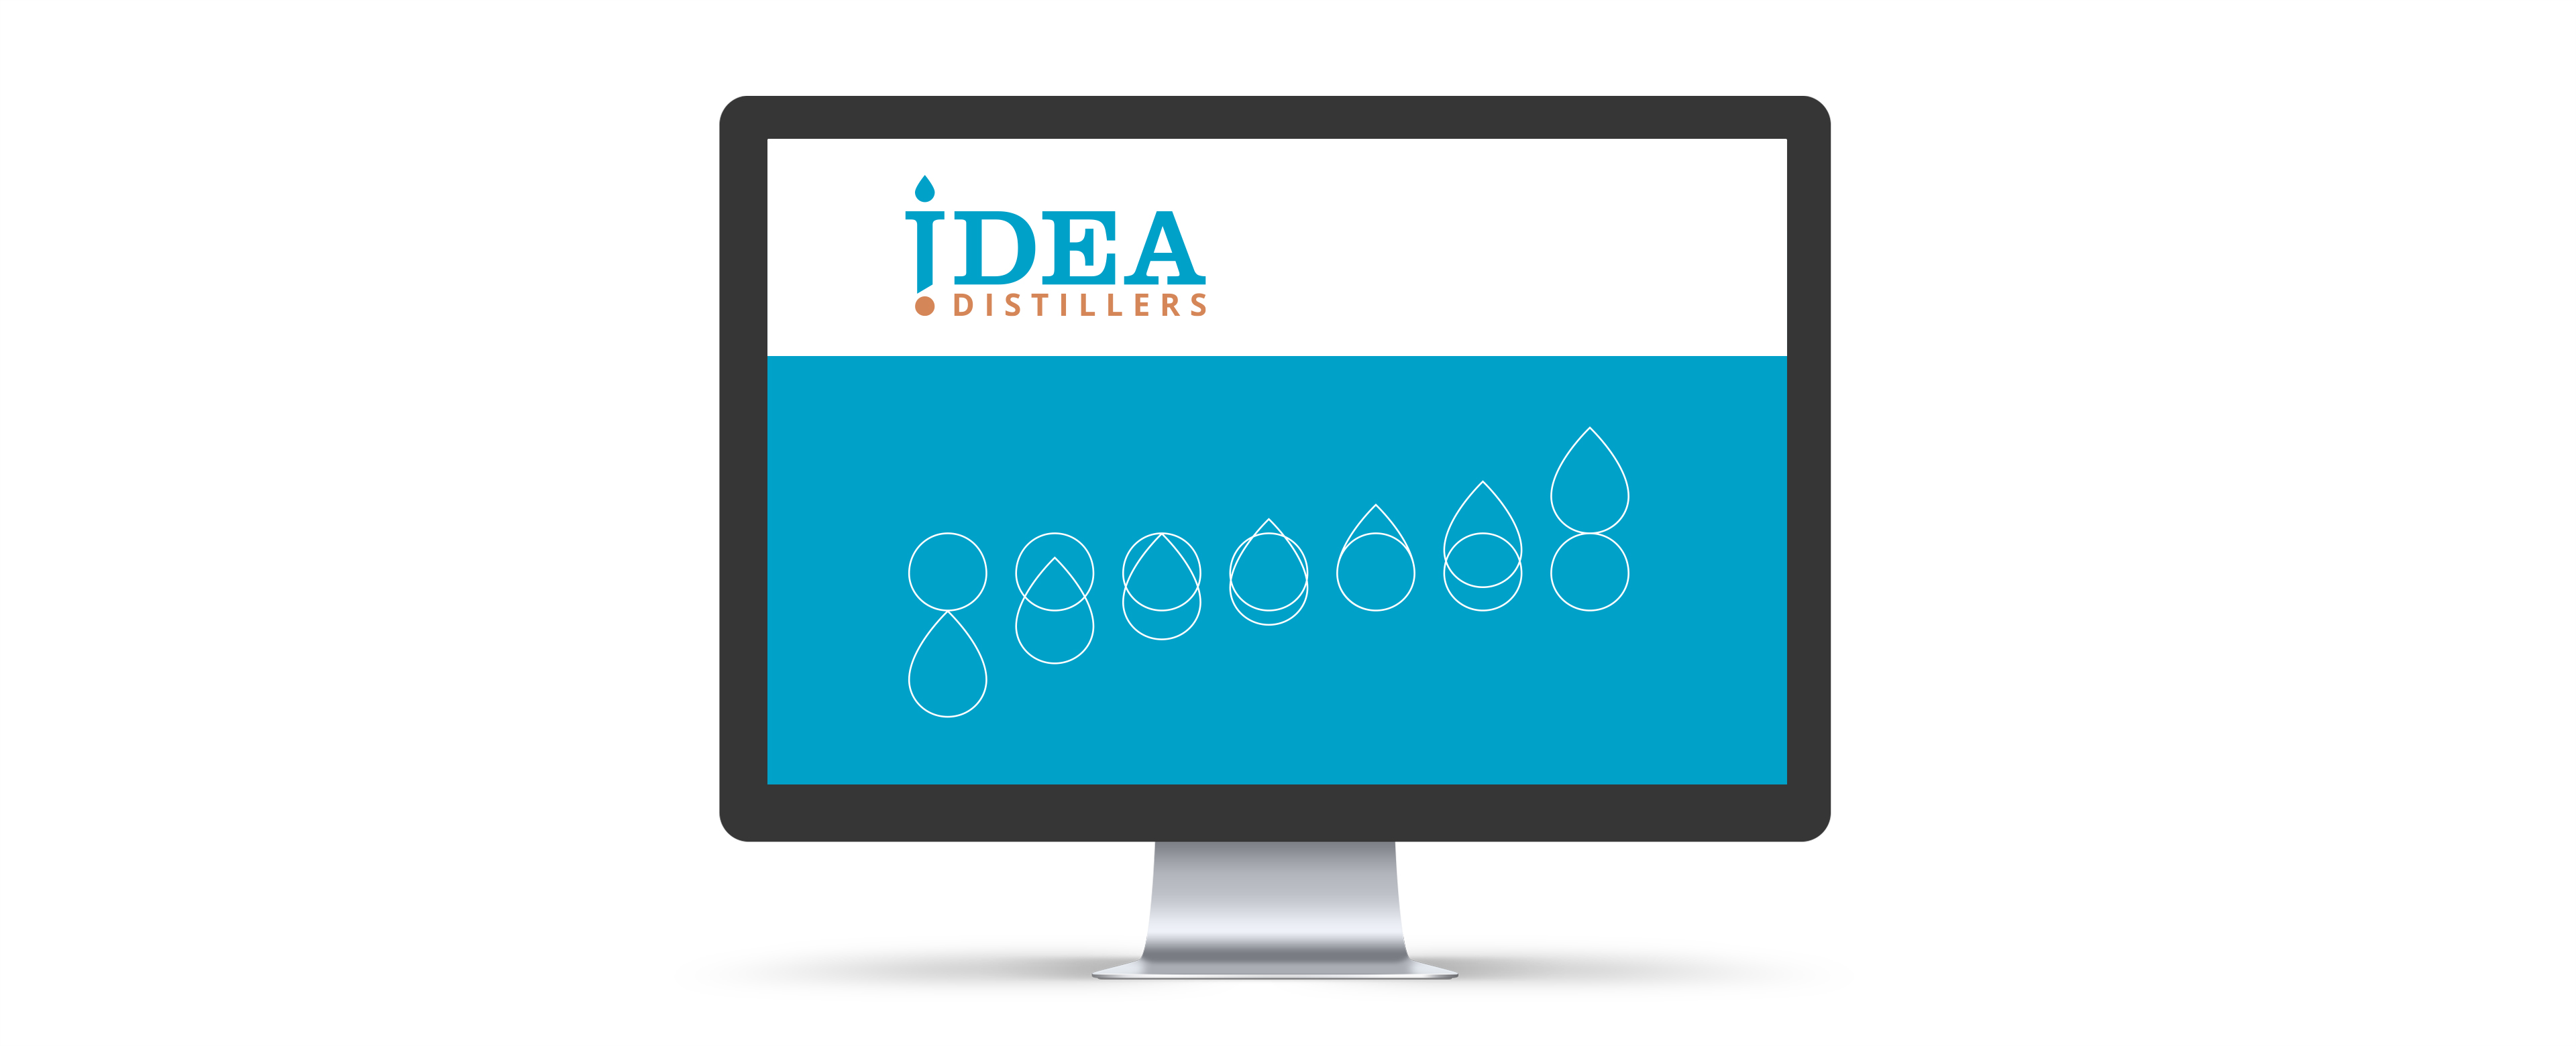 Idea Distillers Logo